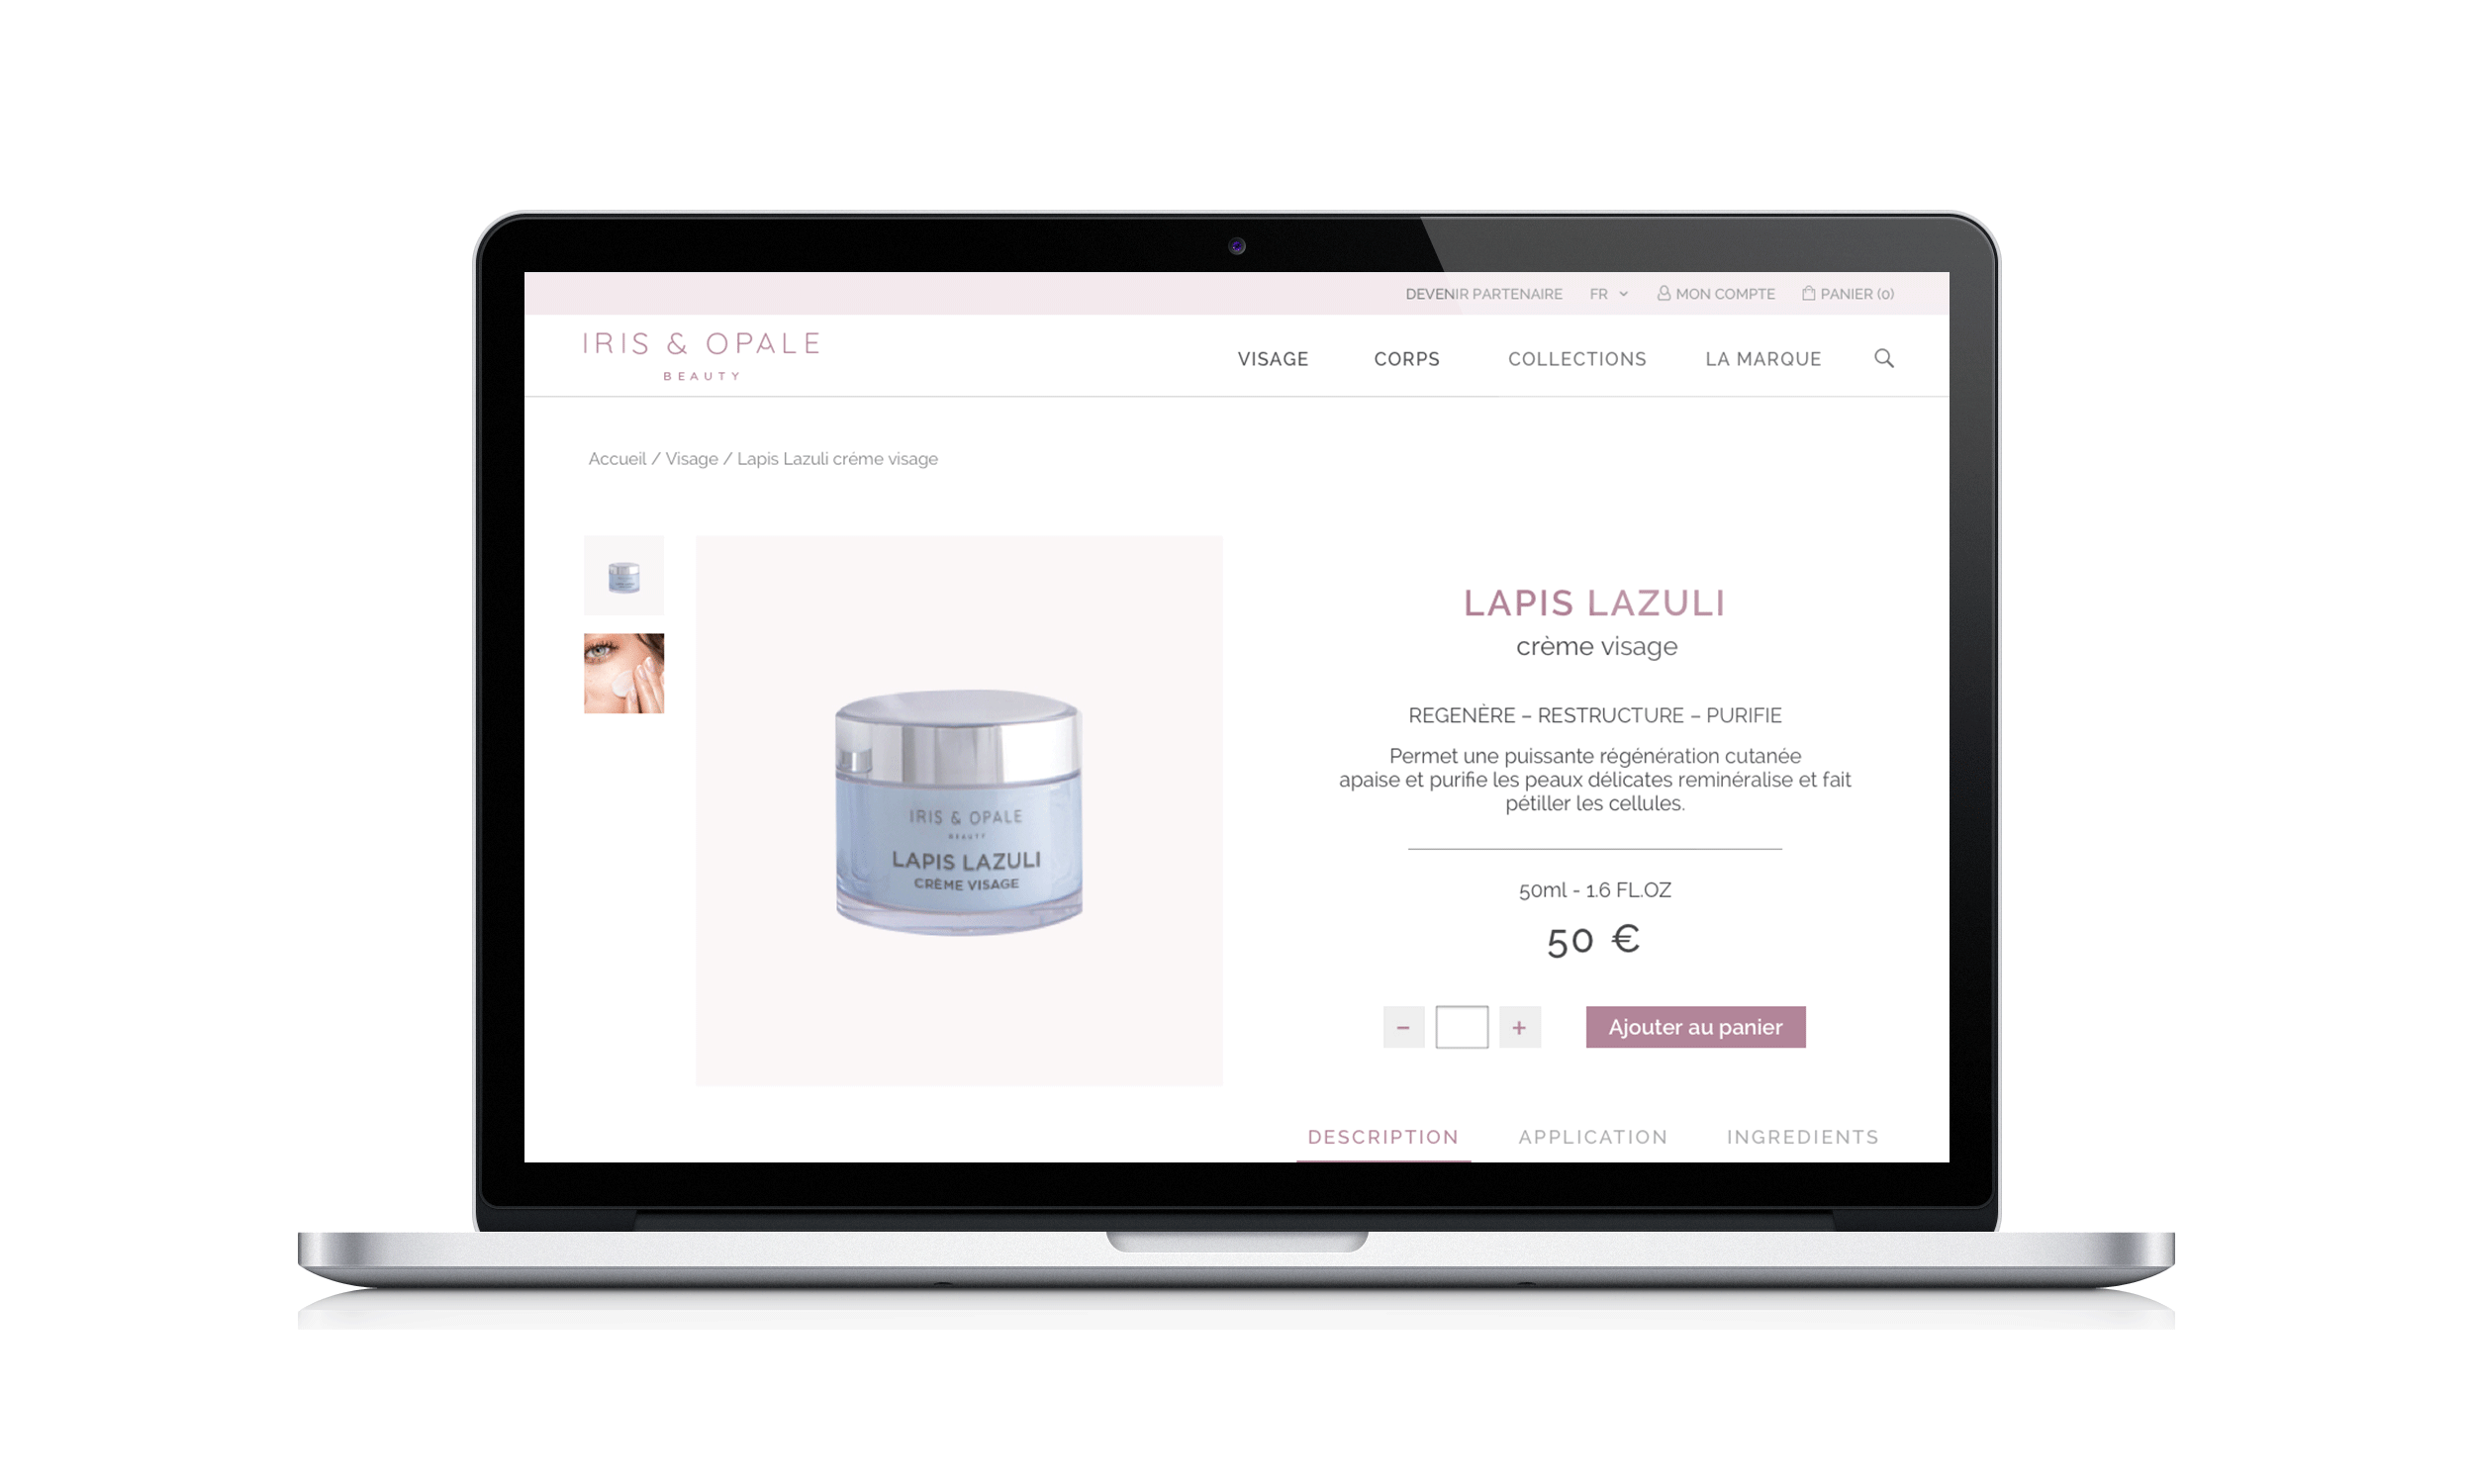 Iris & opale product page